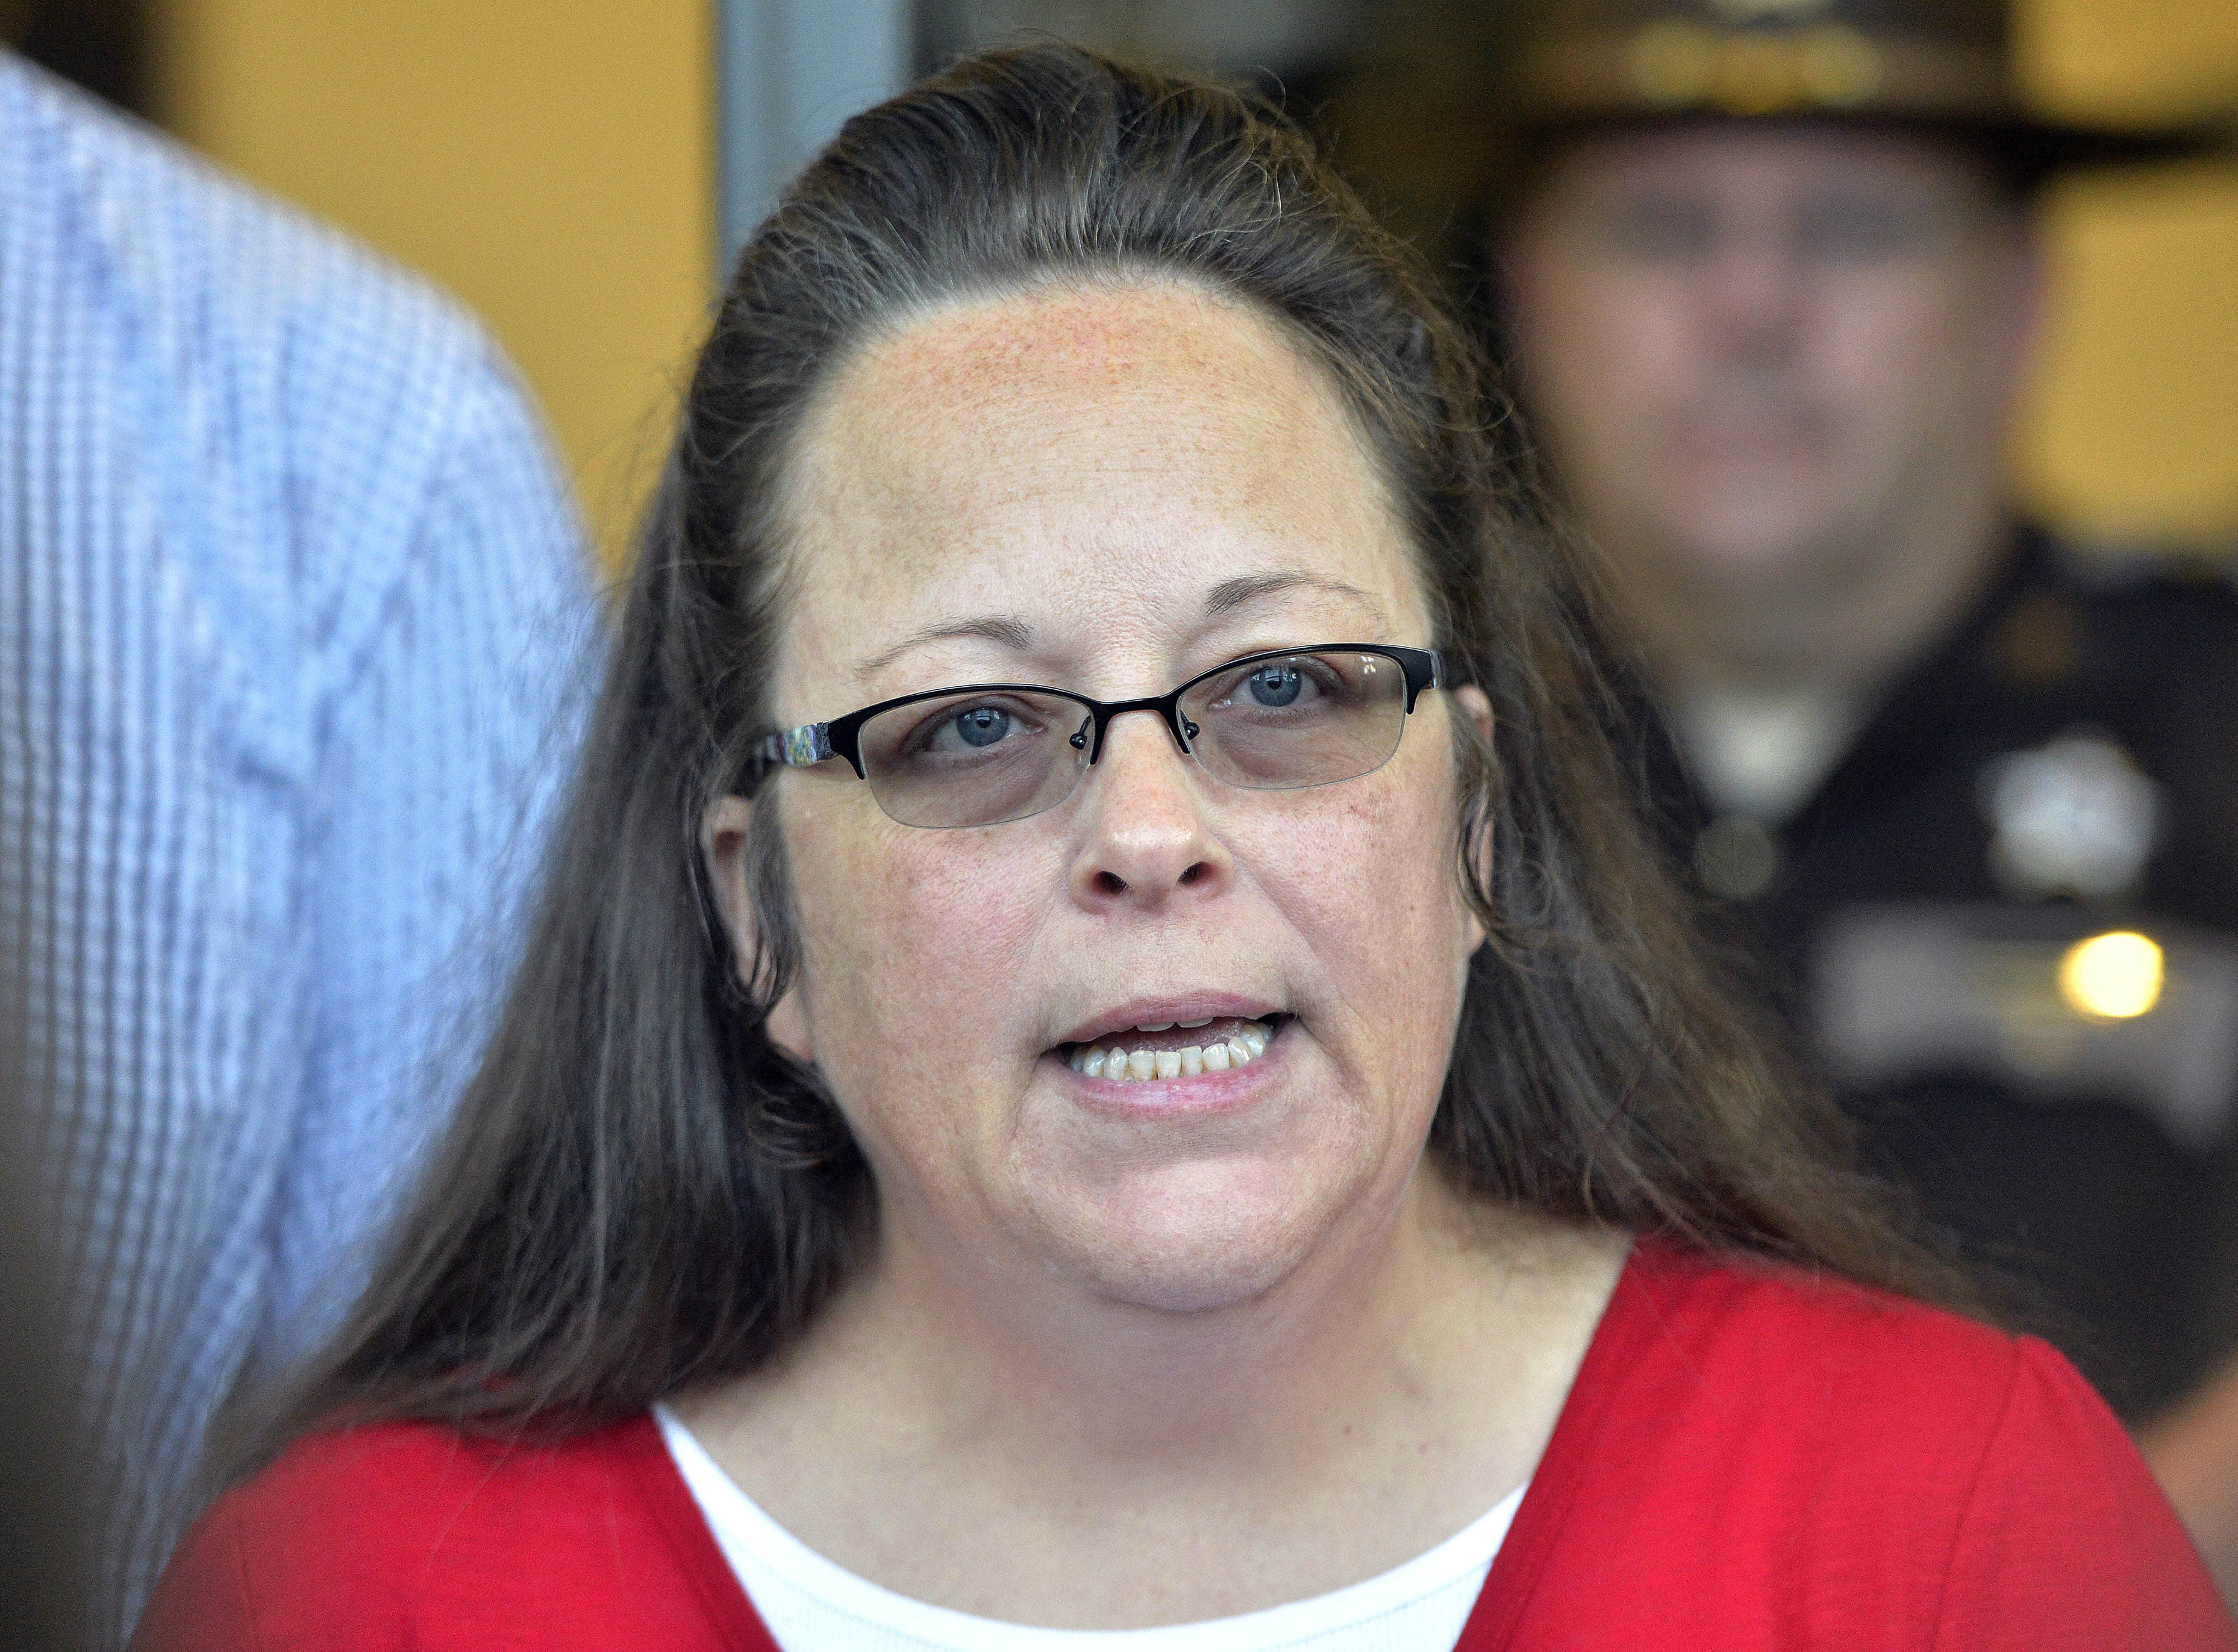 FILE - In this Sept. 14, 2015, file photo, Rowan County Clerk Kim Davis makes a statement to the media at the front door of the Rowan County Judicial Center in Morehead, Ky. Outside attorneys for Republican Kentucky Gov. Matt Bevin say the former county clerk who stopped issuing marriage licenses because of her opposition to gay marriage broke the law and the state shouldn't have to pay legal fees for people who sued her. A federal appeals court is scheduled to hear arguments Thursday, Jan. 31, 2019, about who should pay the lawyers for several gay and straight couples who sued Davis in 2015. (AP Photo/Timothy D. Easley, File)